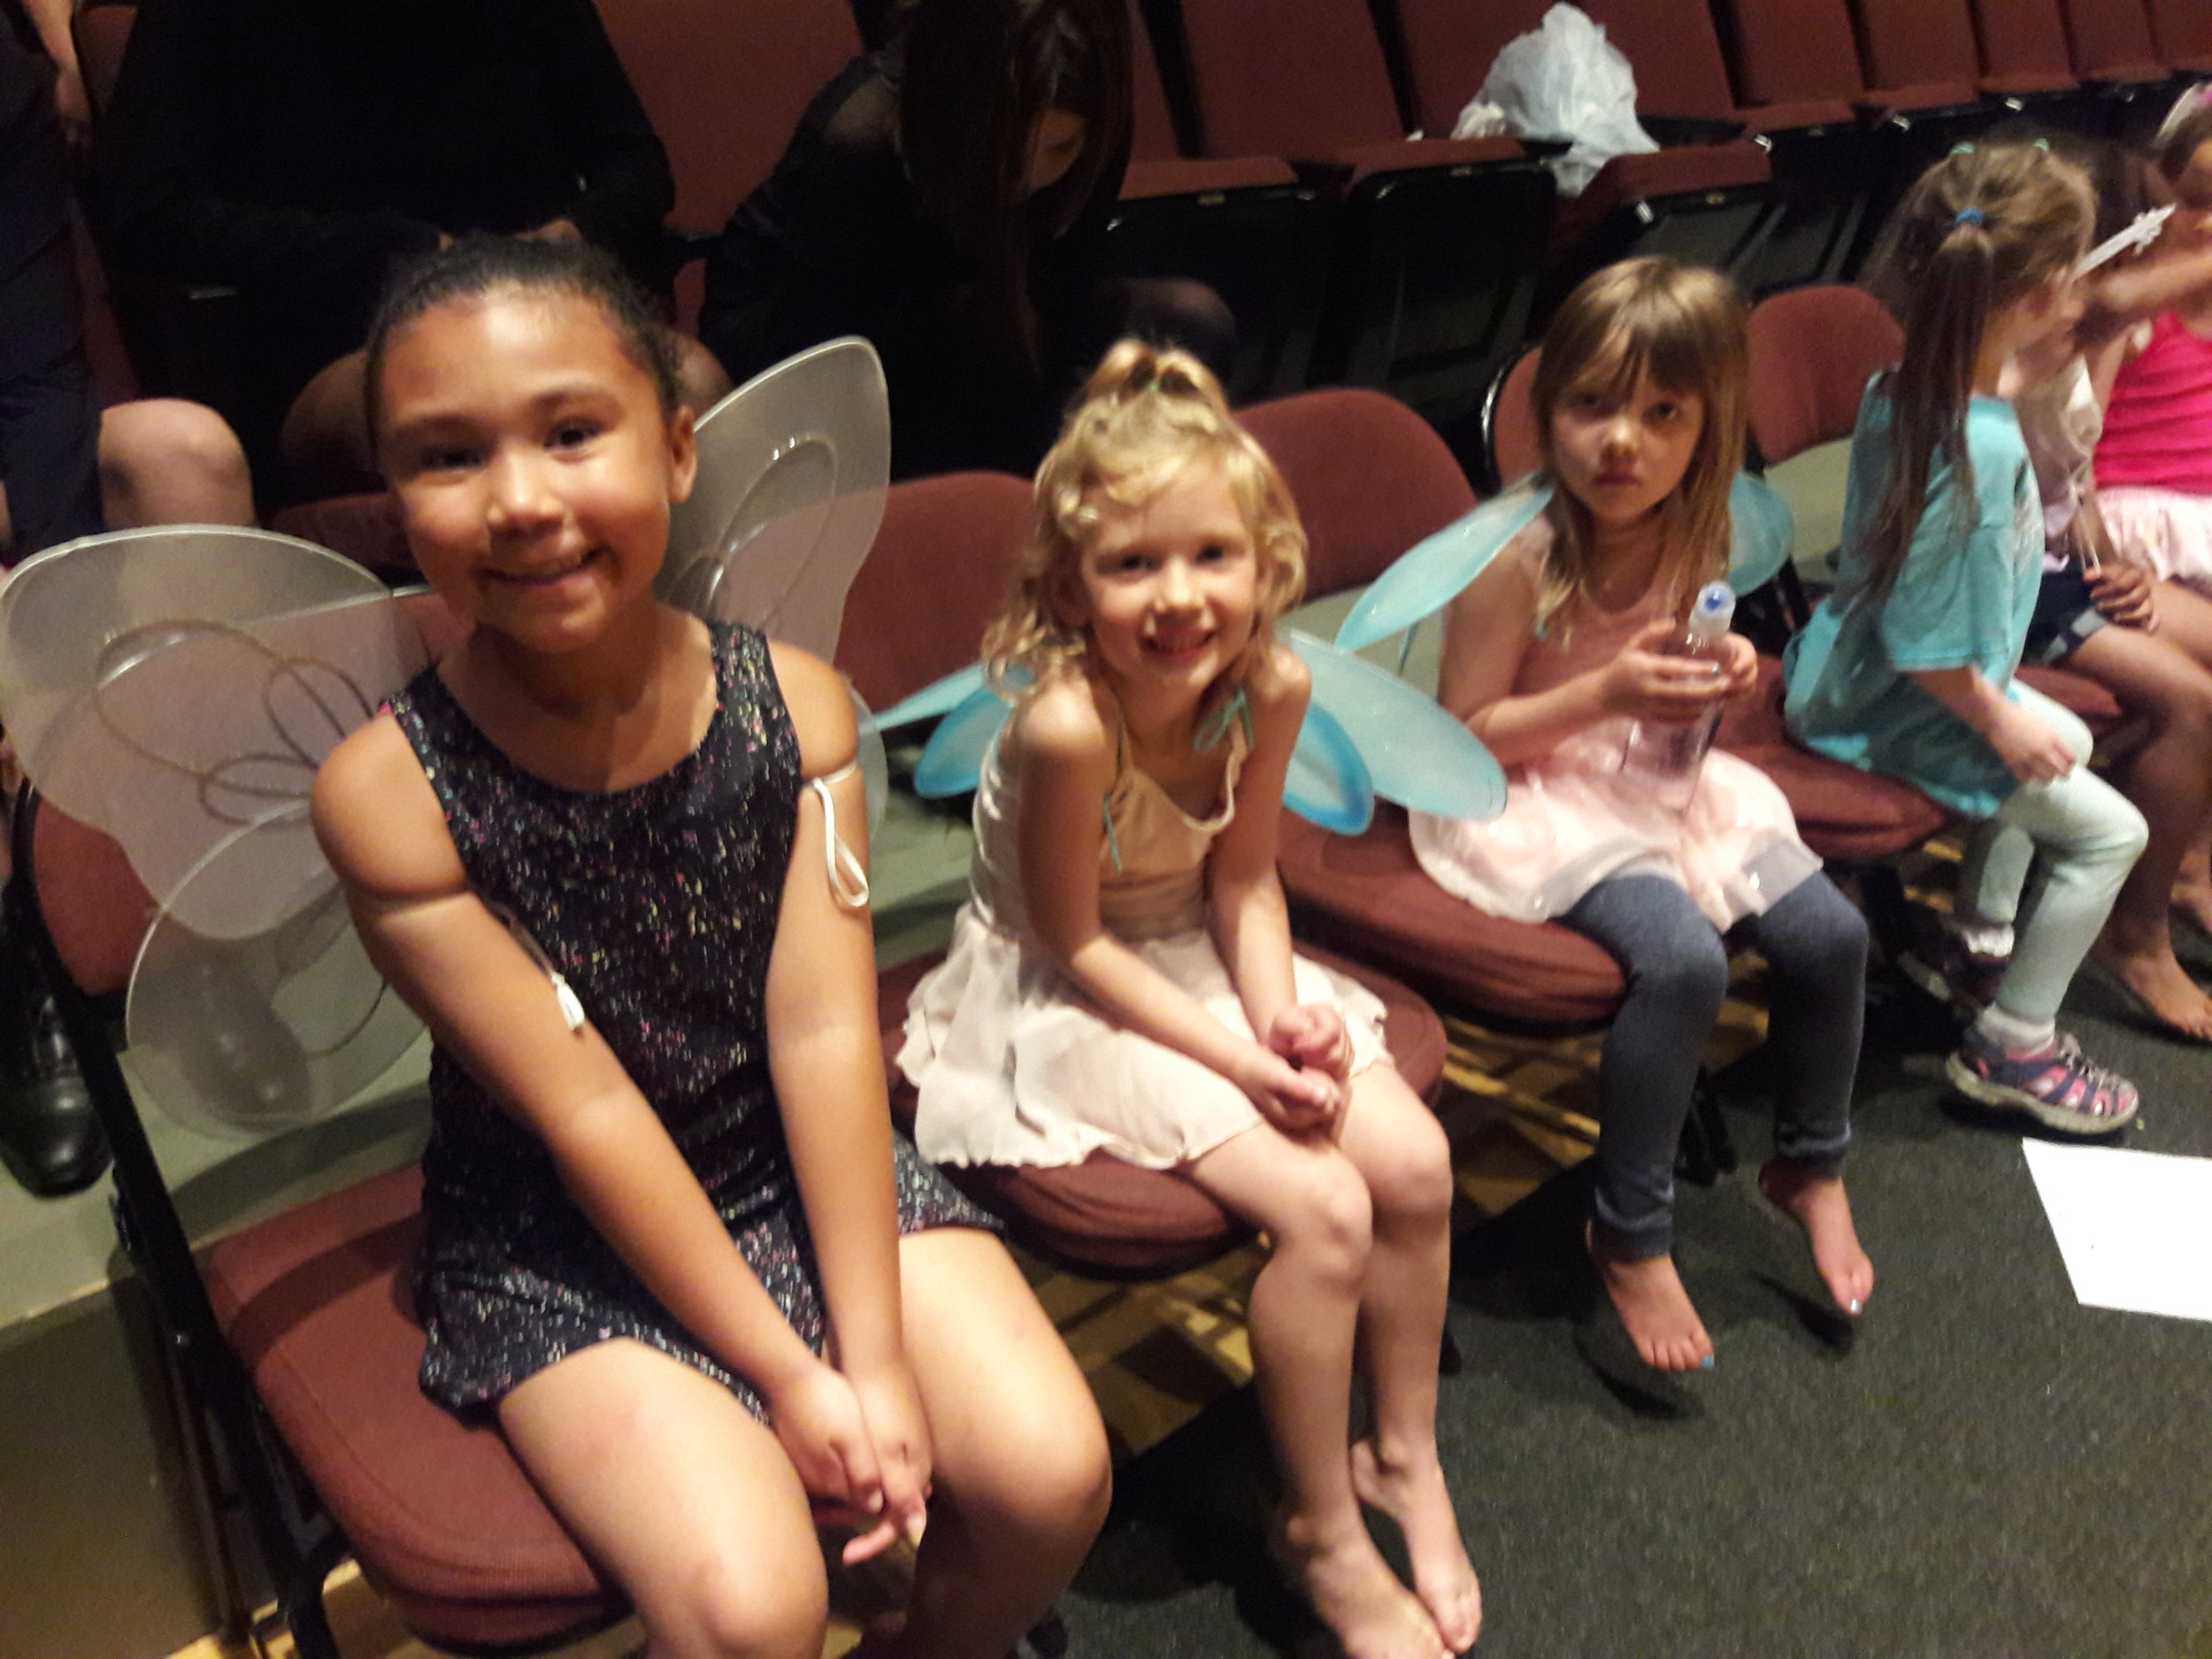 Dance Fundamentals students (ages 5-6) wait patiently during dress rehearsal